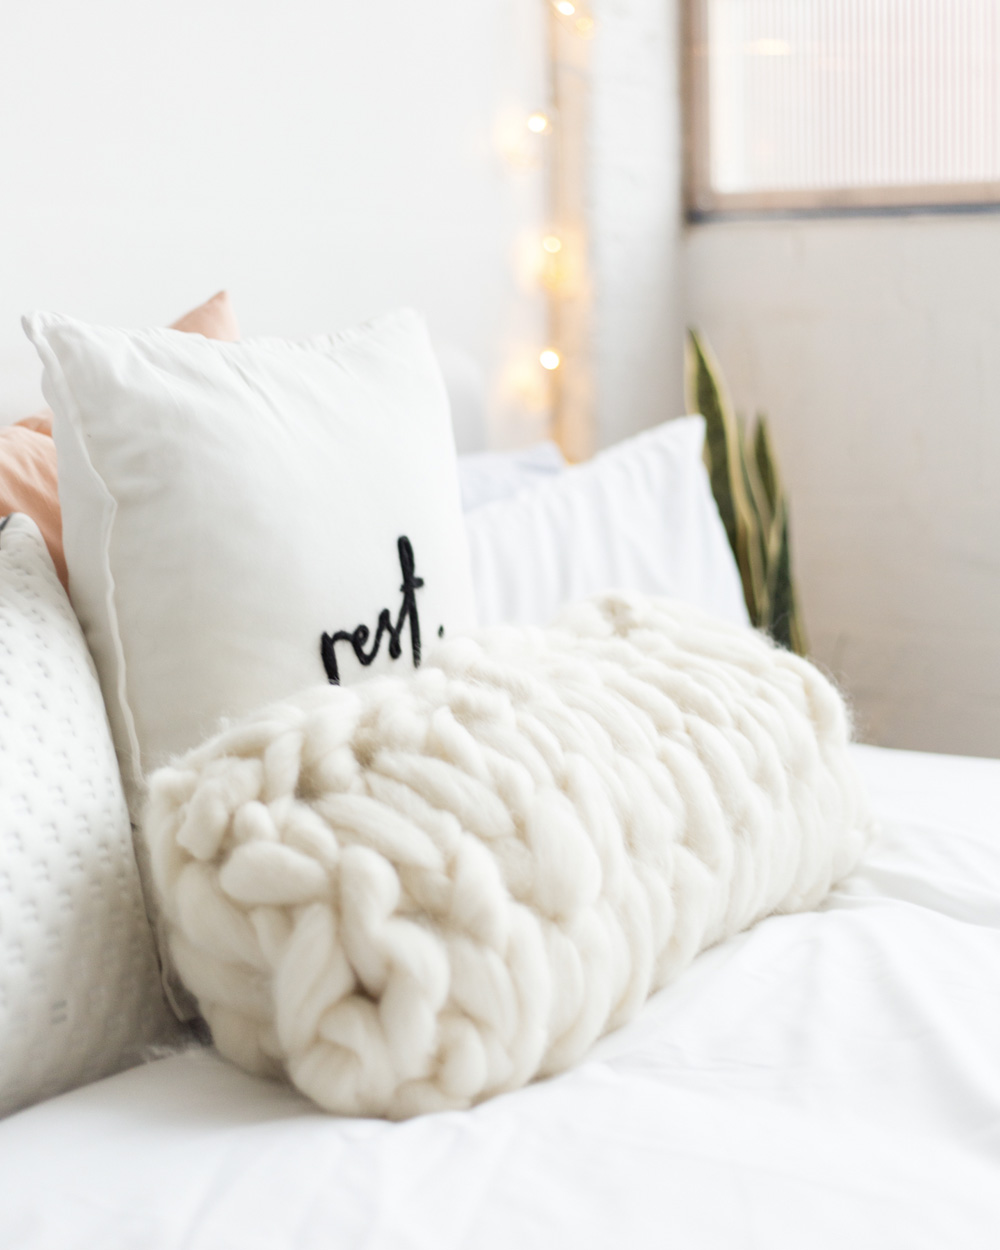 diy pinterest chambre coussin tricot